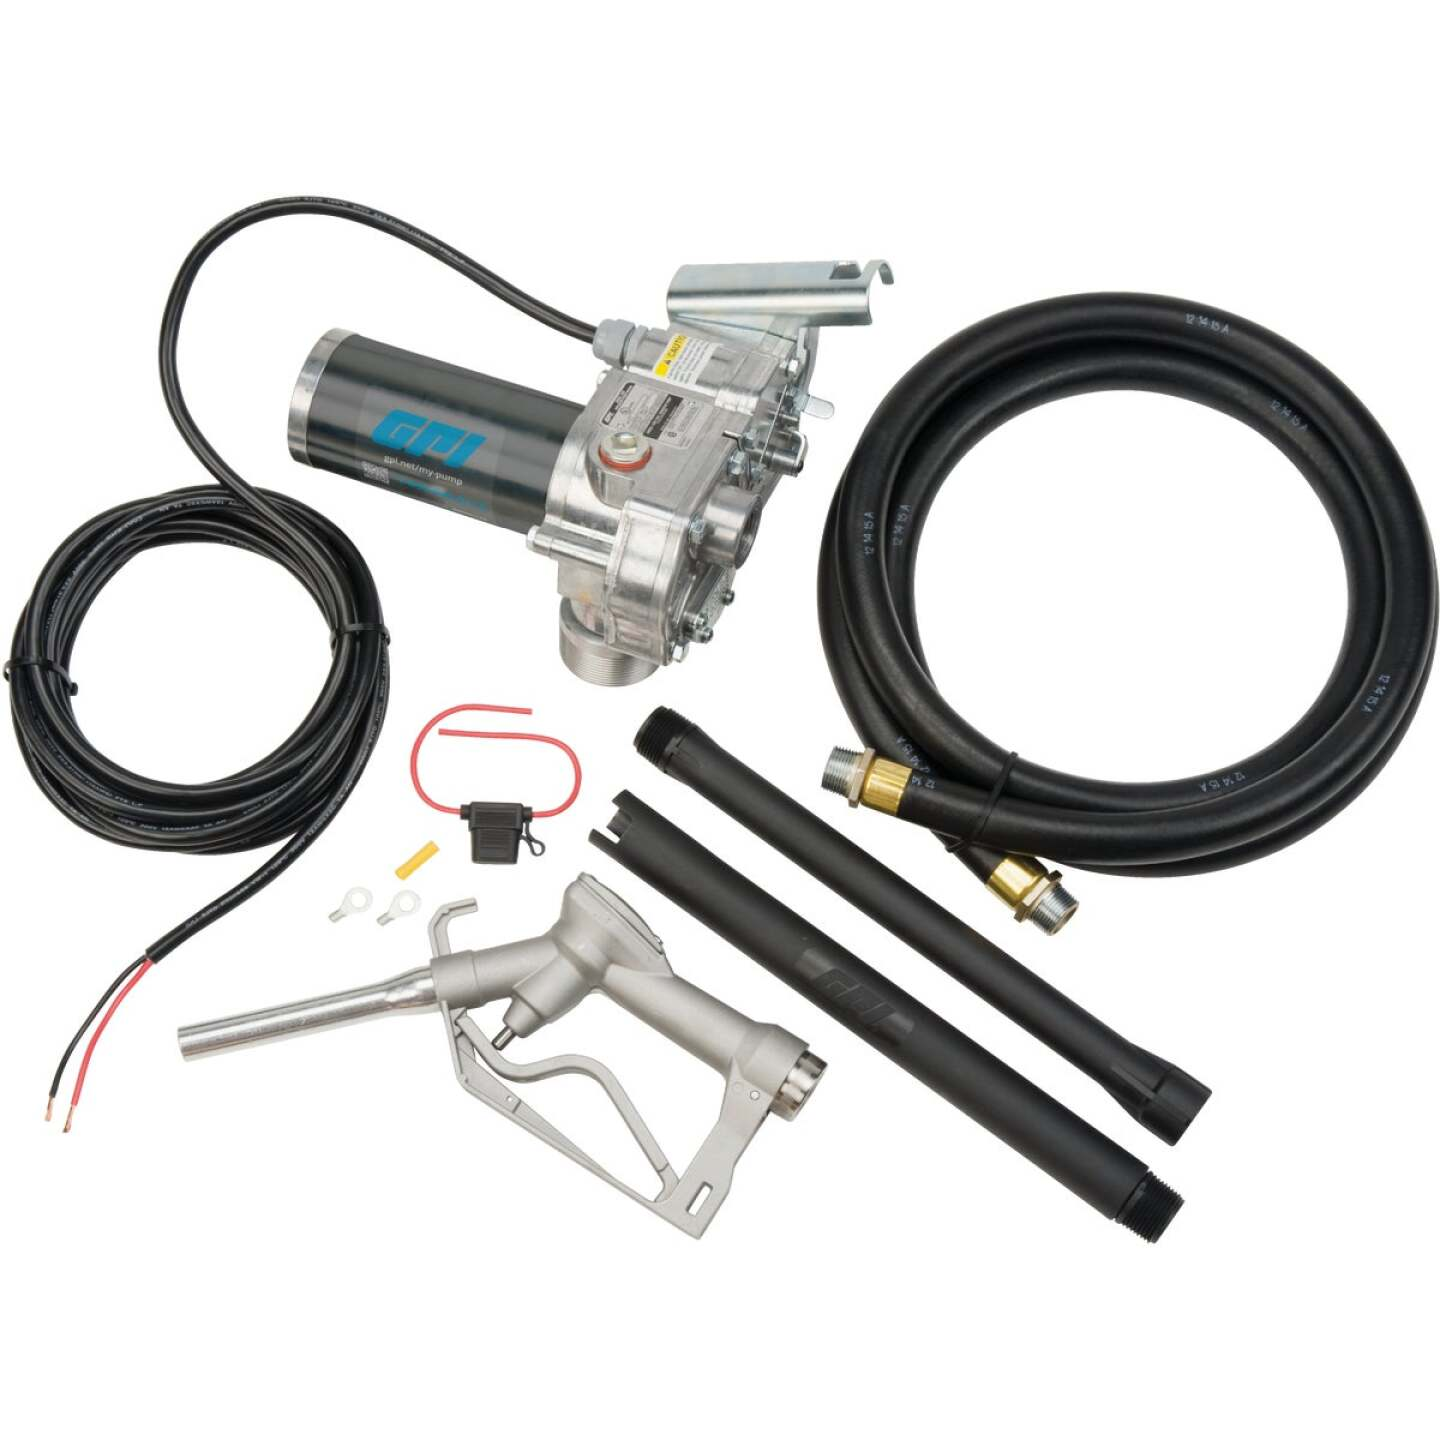 GPI 12V DC, 15 GPM Manual Economy Fuel Transfer Pump Image 3